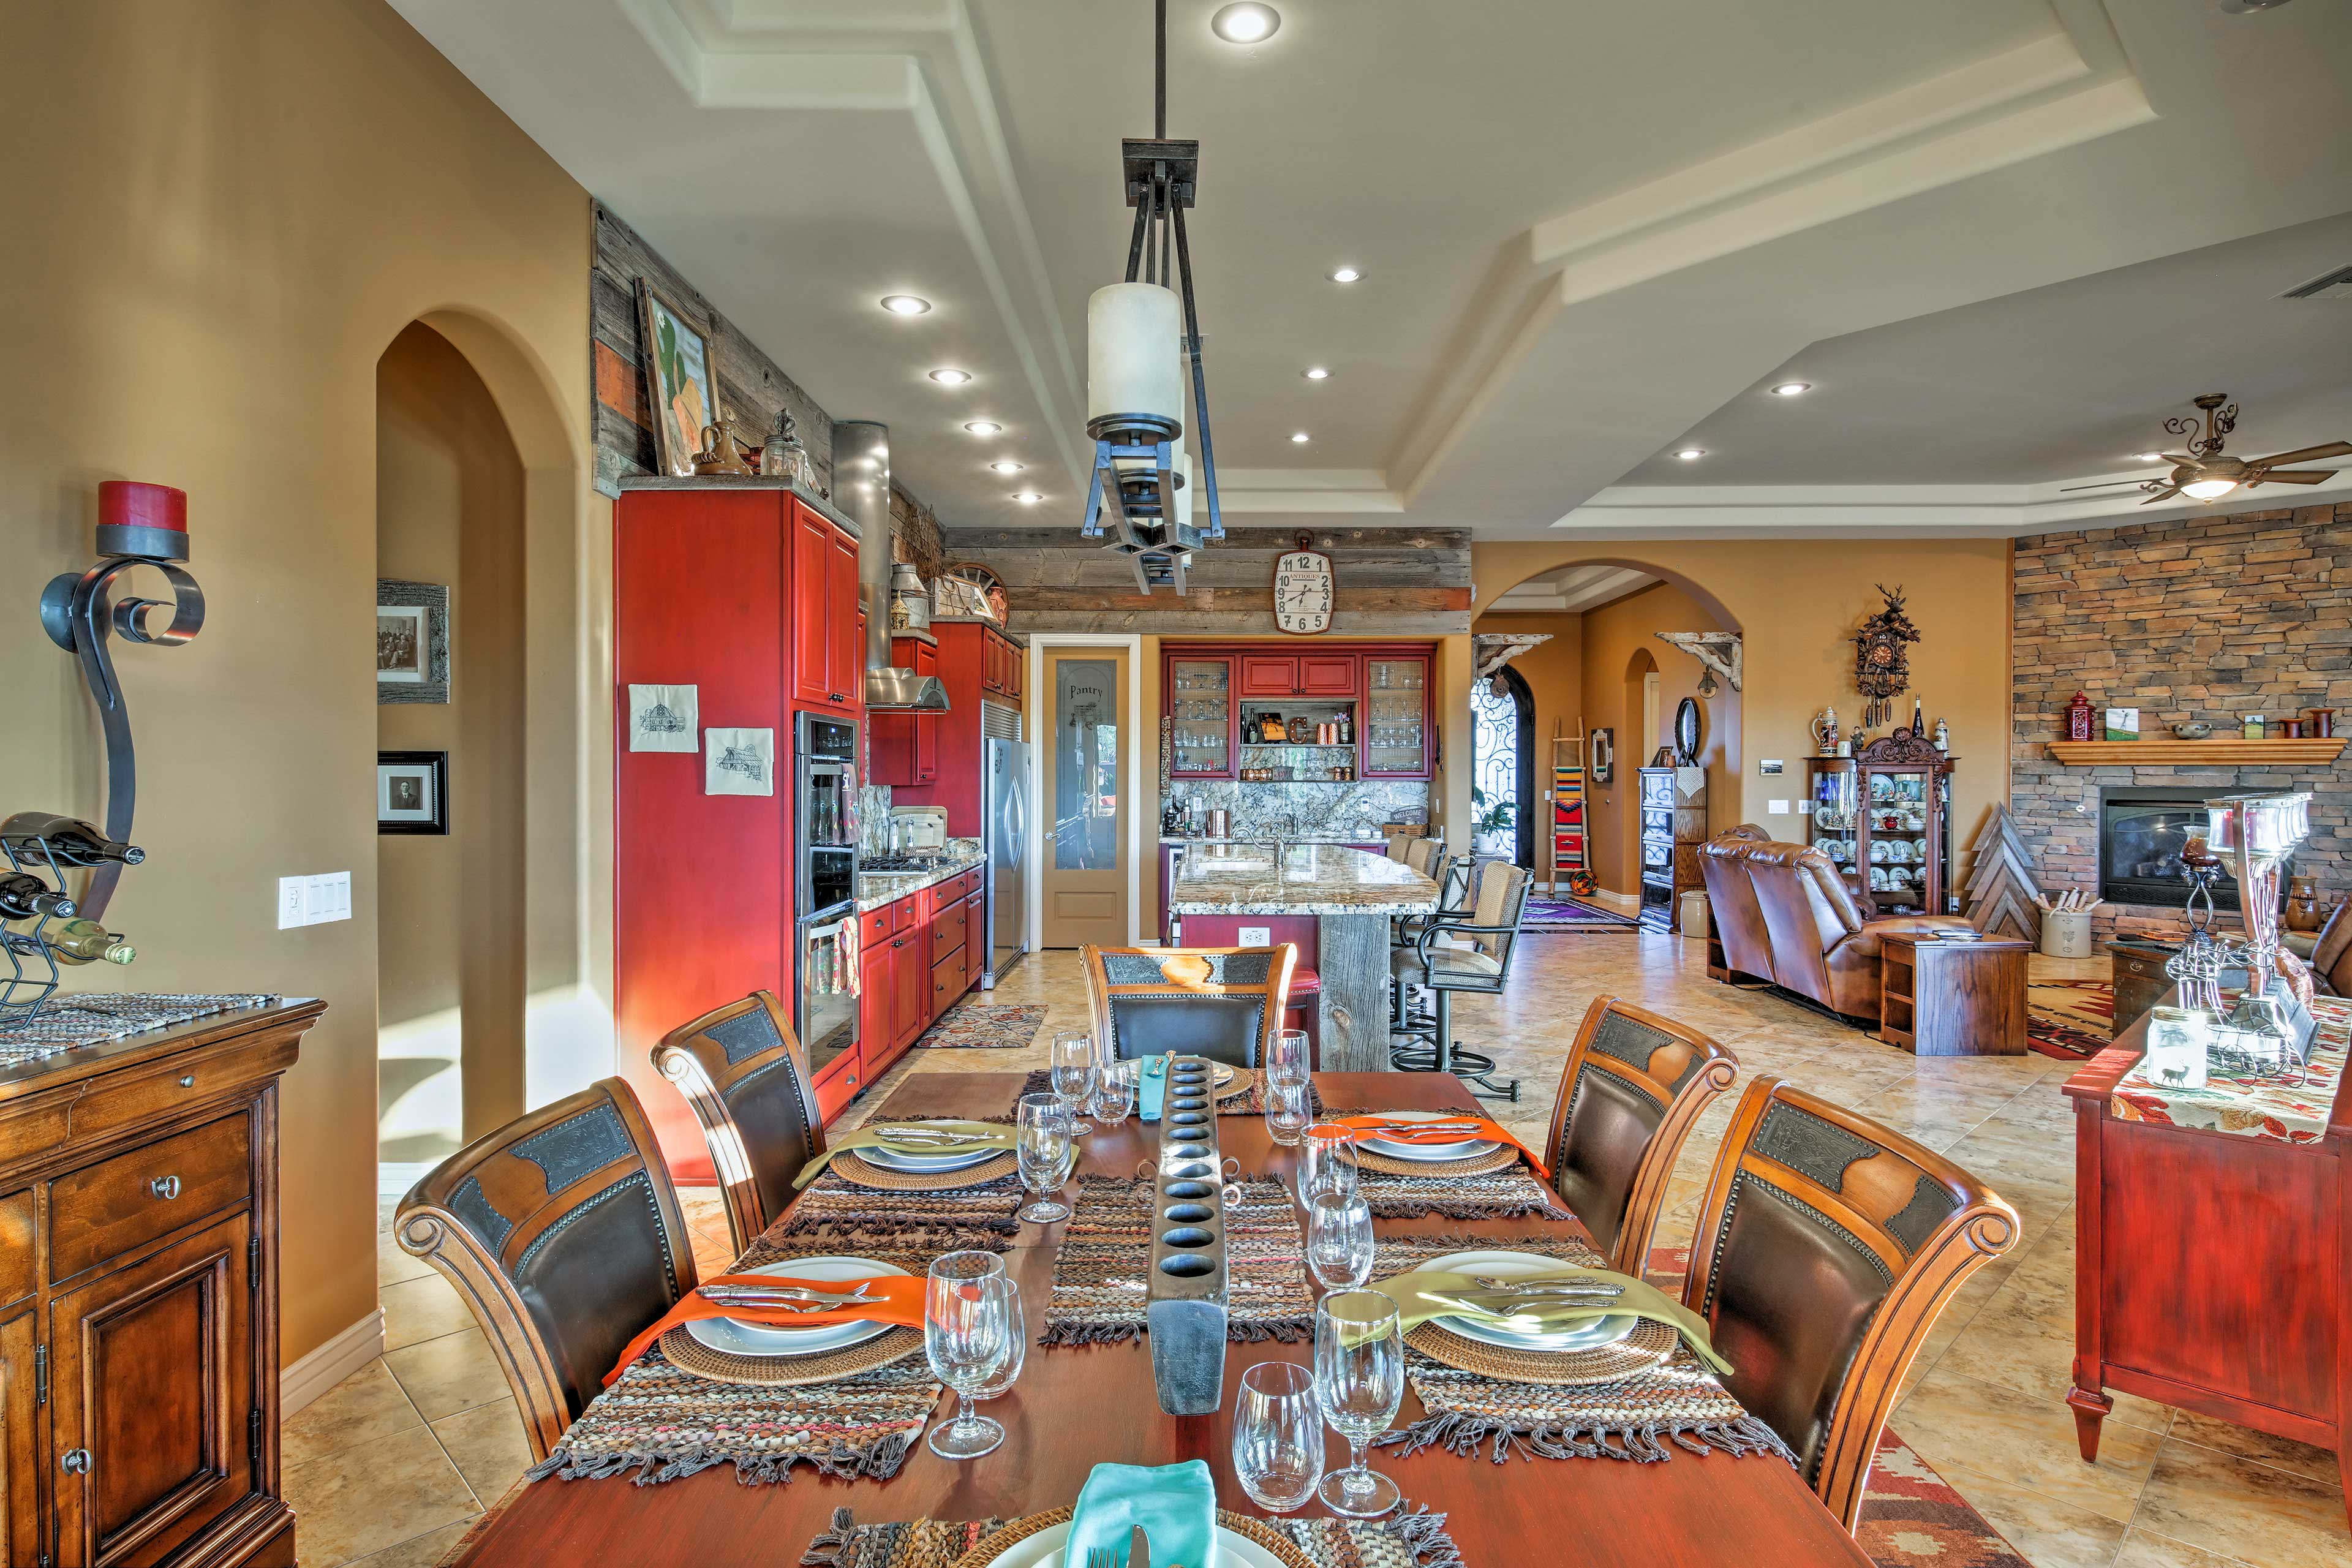 Savor your meals together at the spacious dining table.